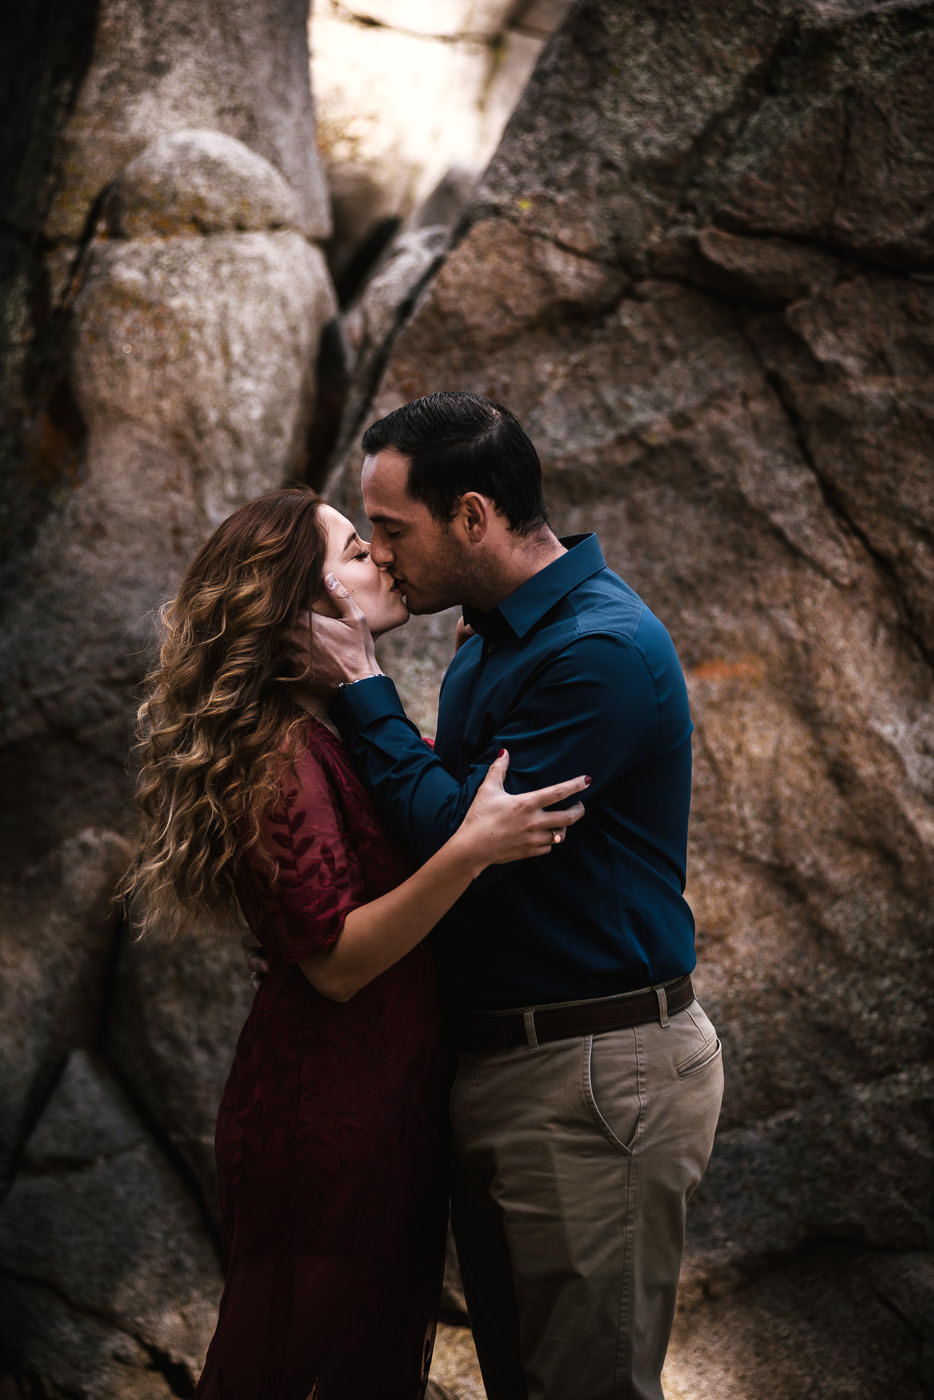 Wild and romantic engagment session in the mountains.